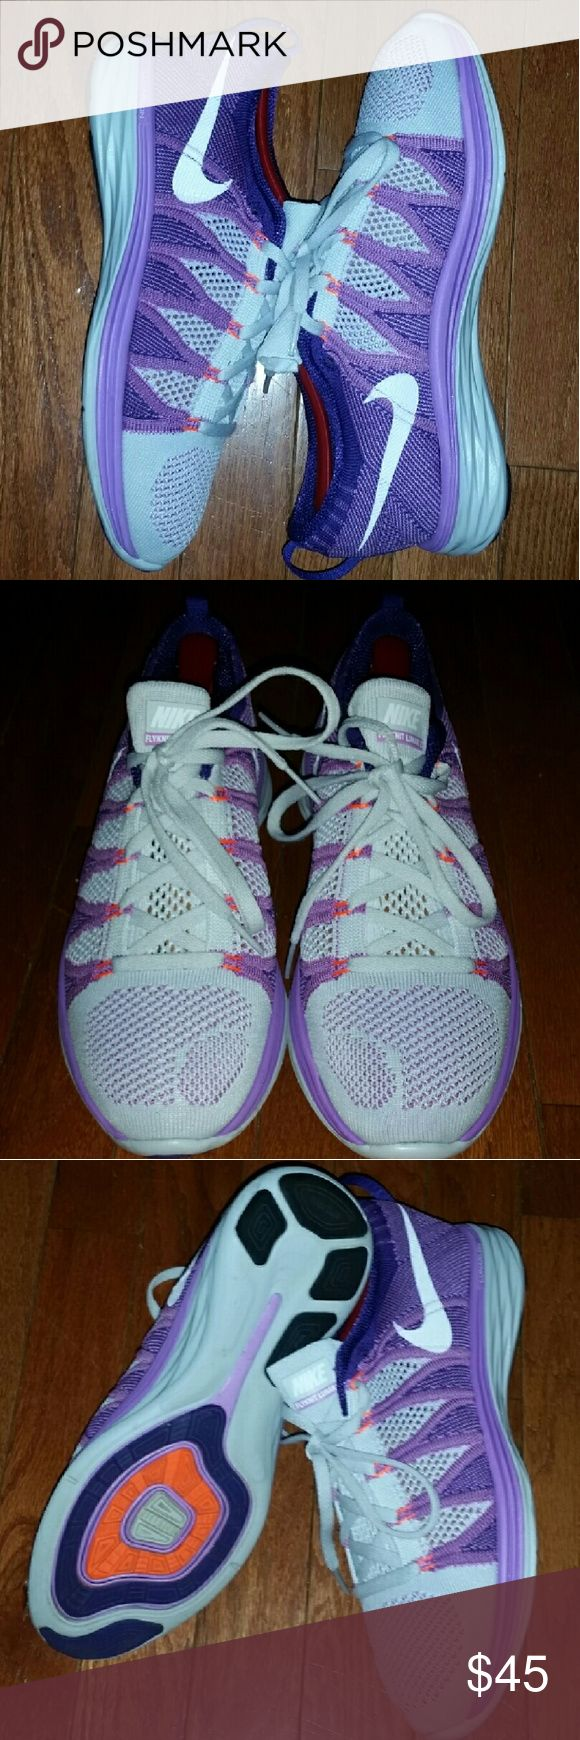 Women's Nike Lunar Flyknit 2 Women's Nike Lunar Flyknit 2 size 8 great condition no rips stains or tears shoes have been worn 2 or 3 times only to the gym Nike Shoes Athletic Shoes